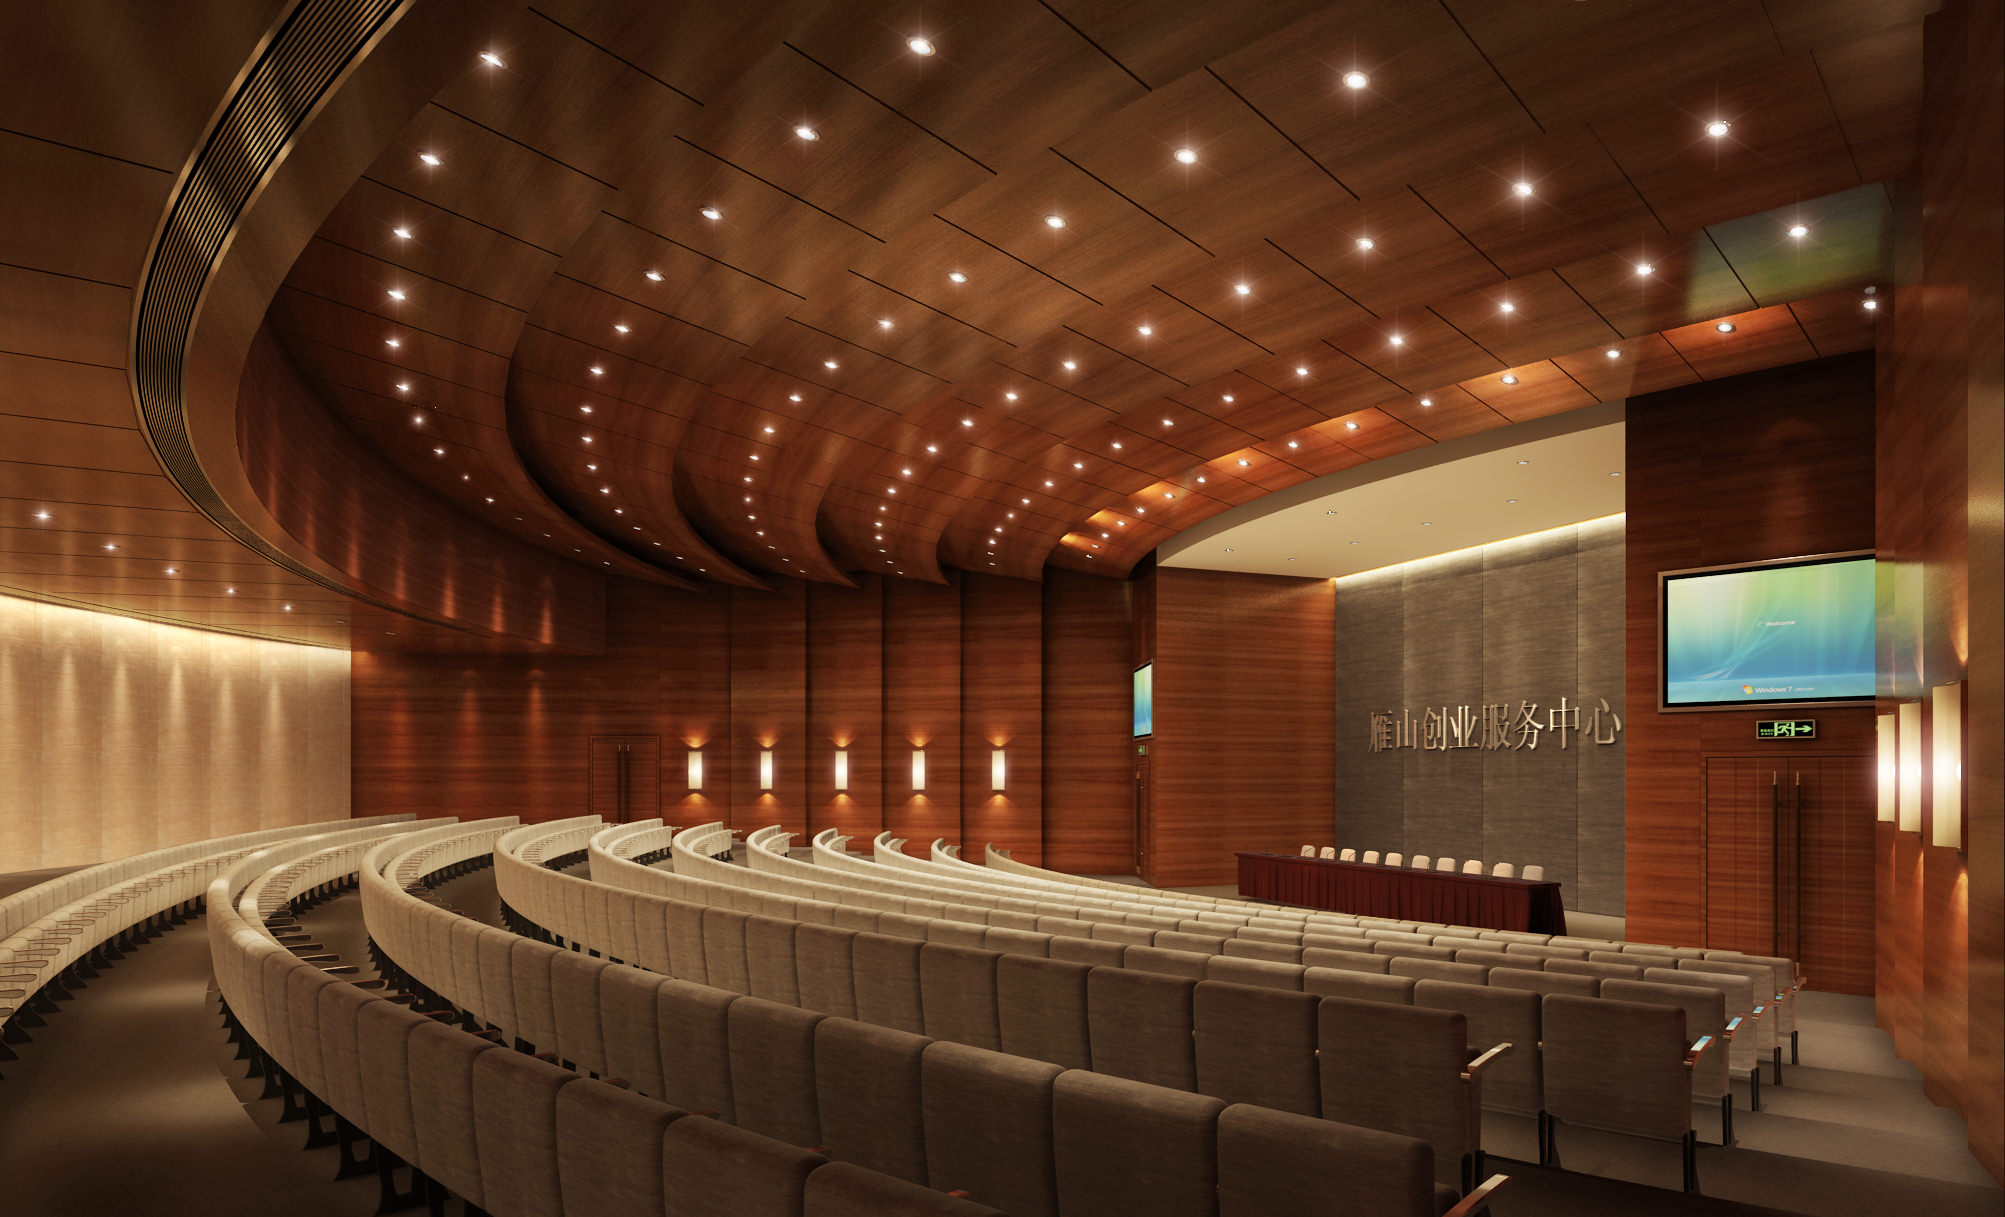 Spacious Auditorium Hall With Screens 3d Model Max